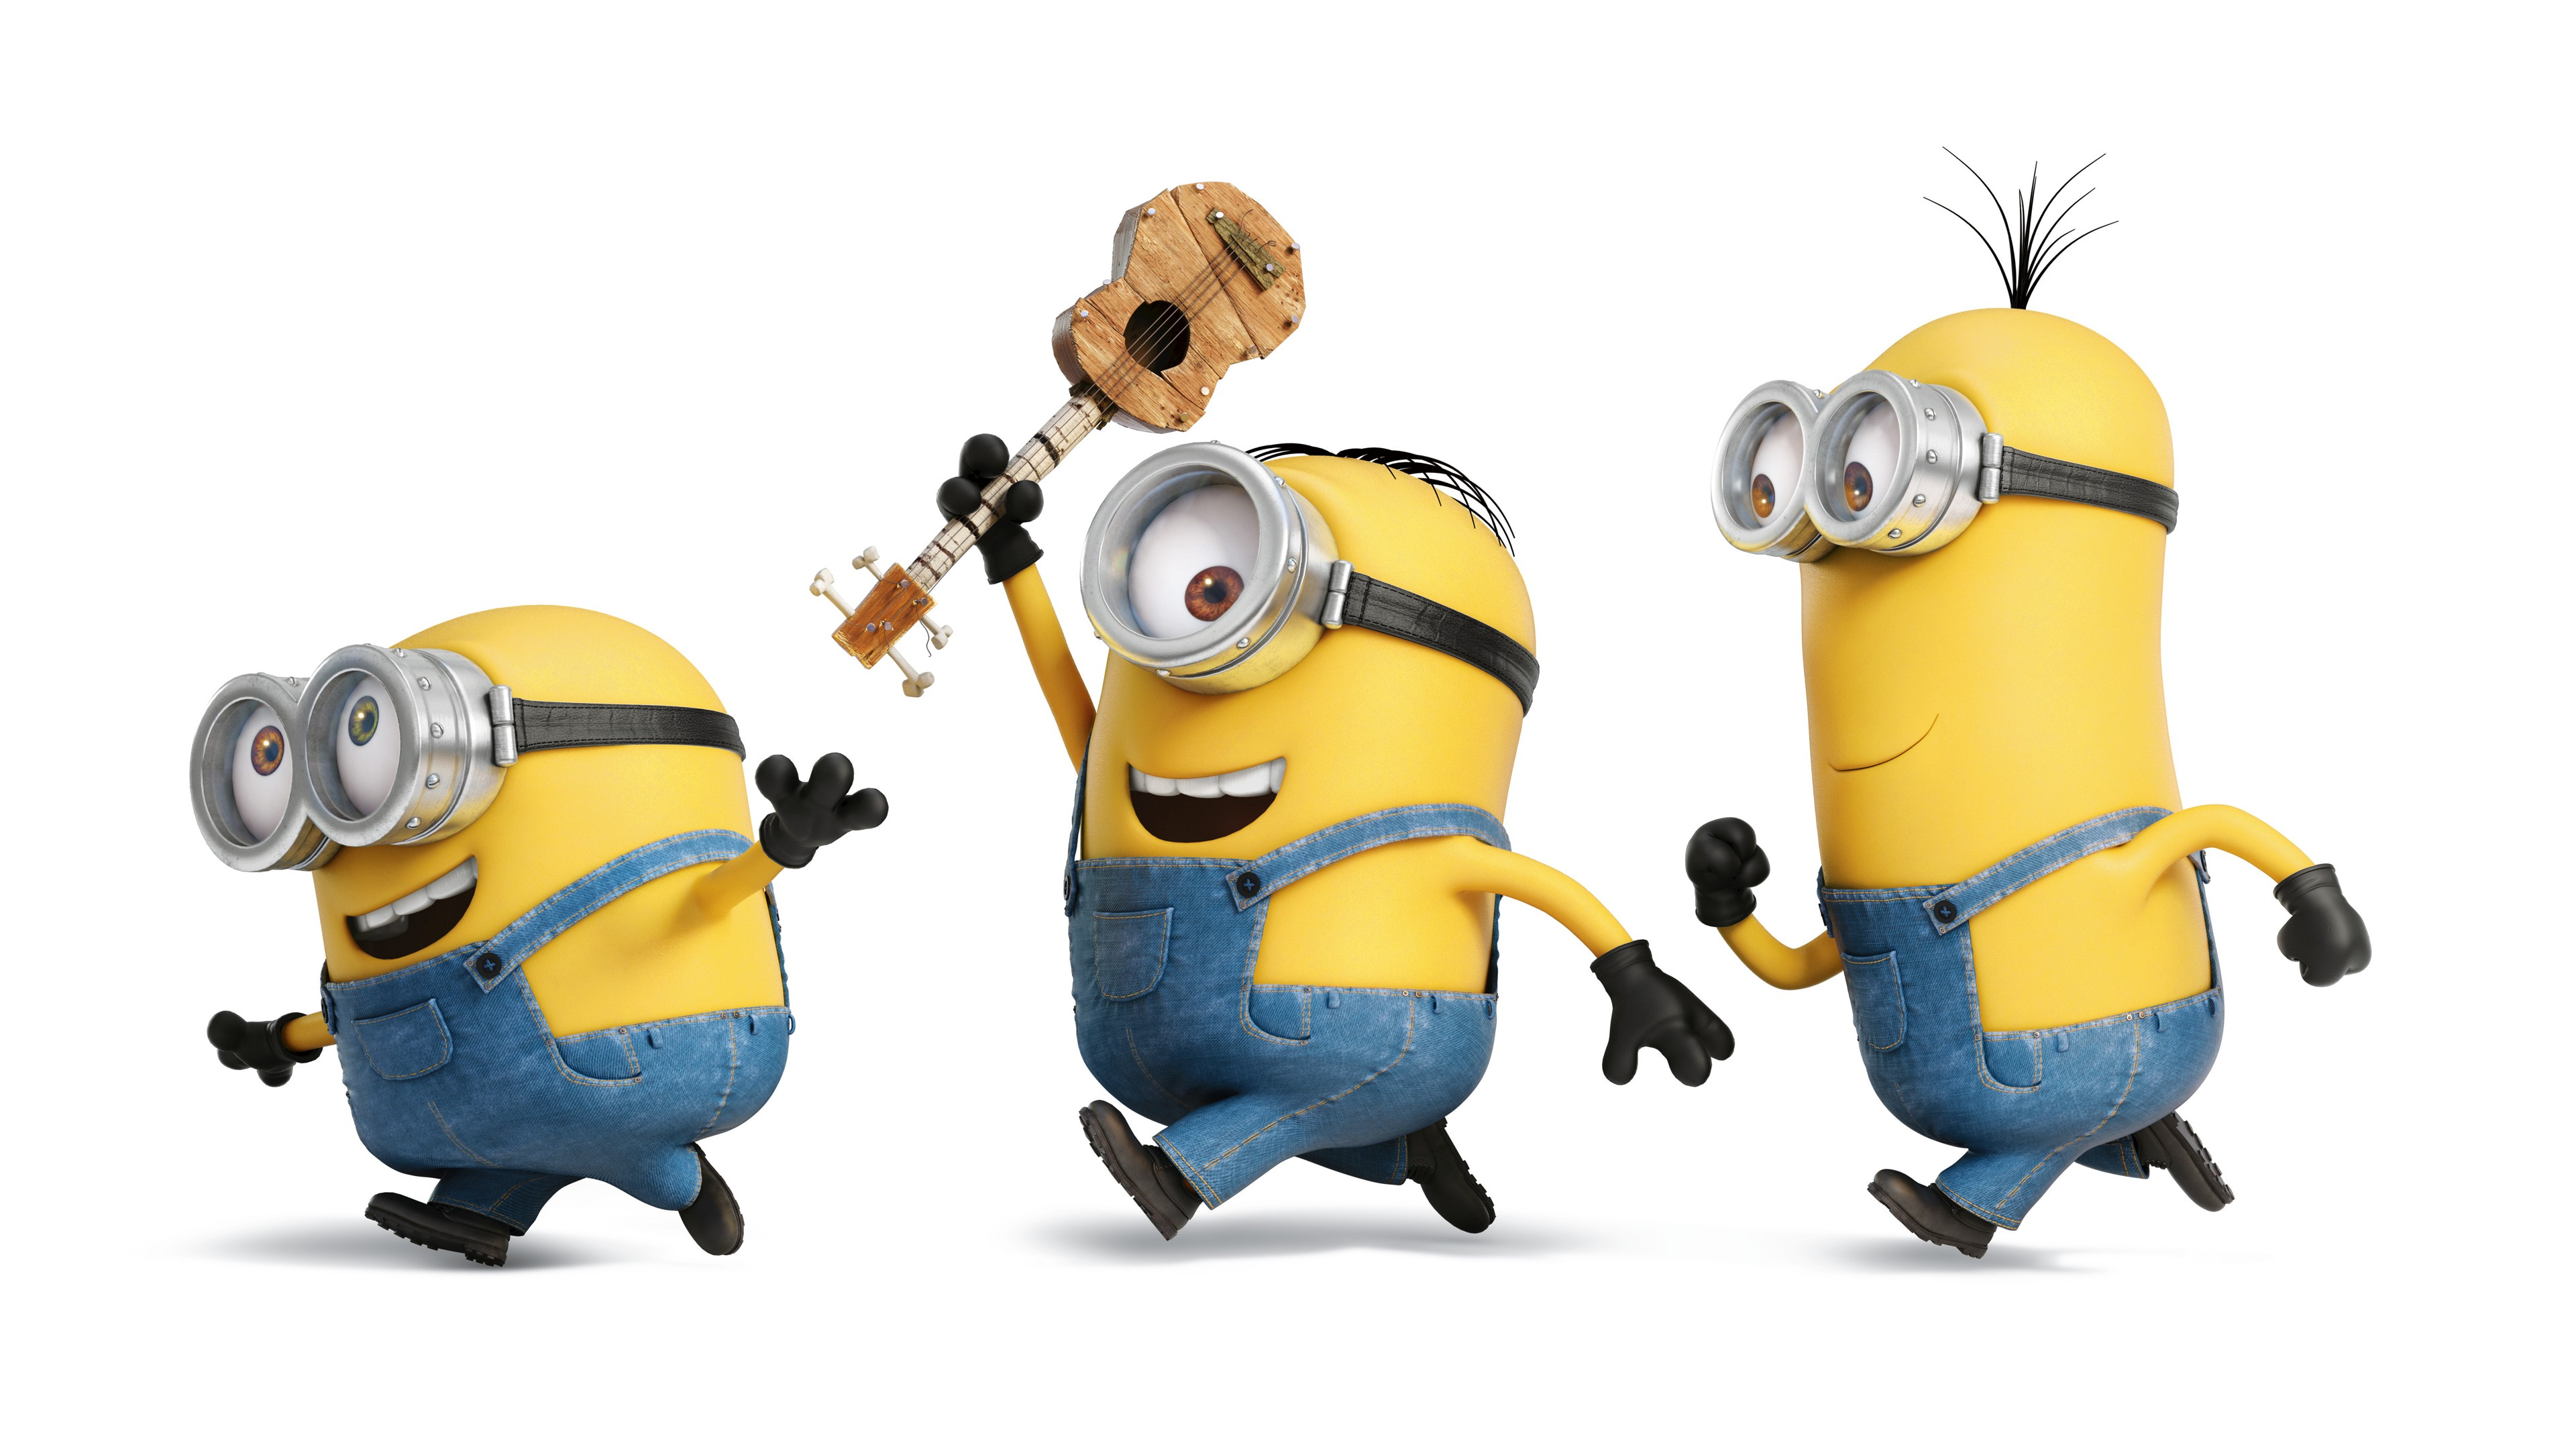 minions funny 2 hd cartoons 4k wallpapers images